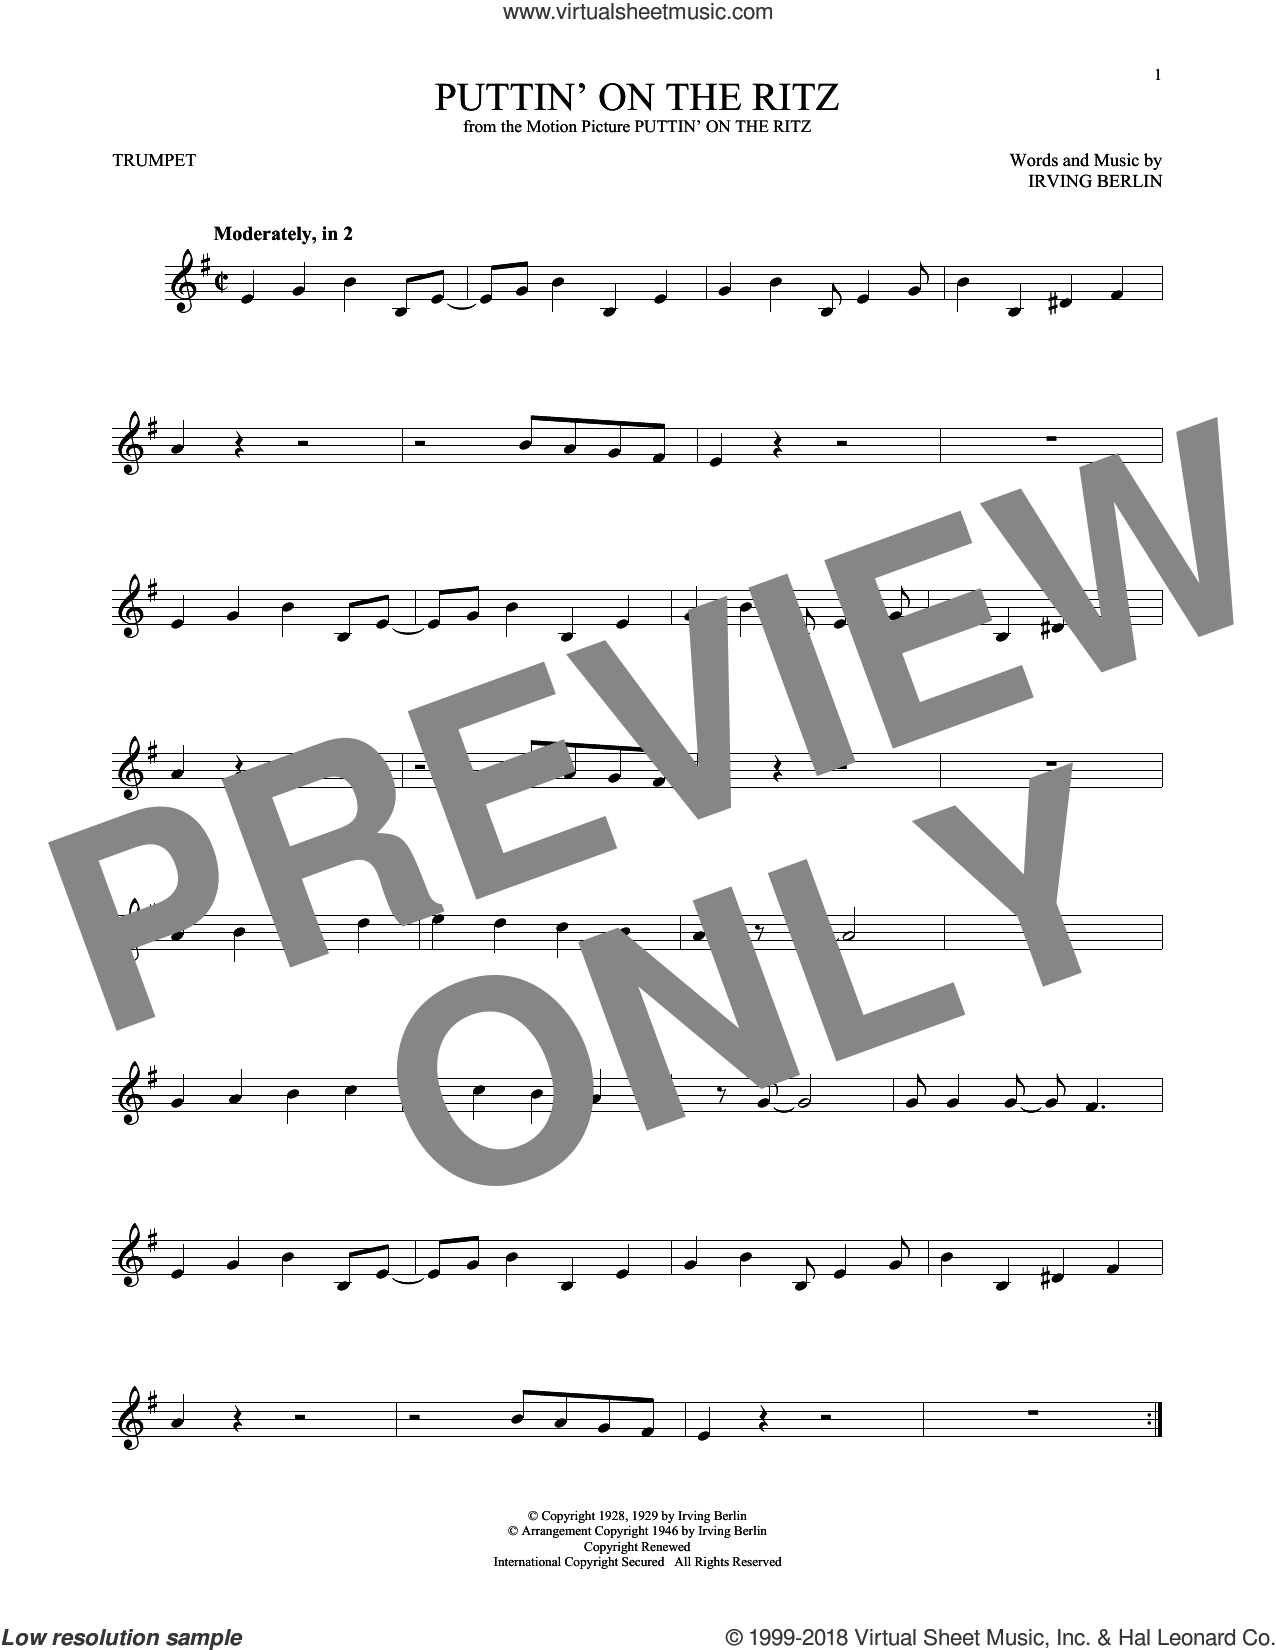 Puttin' On The Ritz sheet music for trumpet solo by Irving Berlin and Taco, intermediate skill level